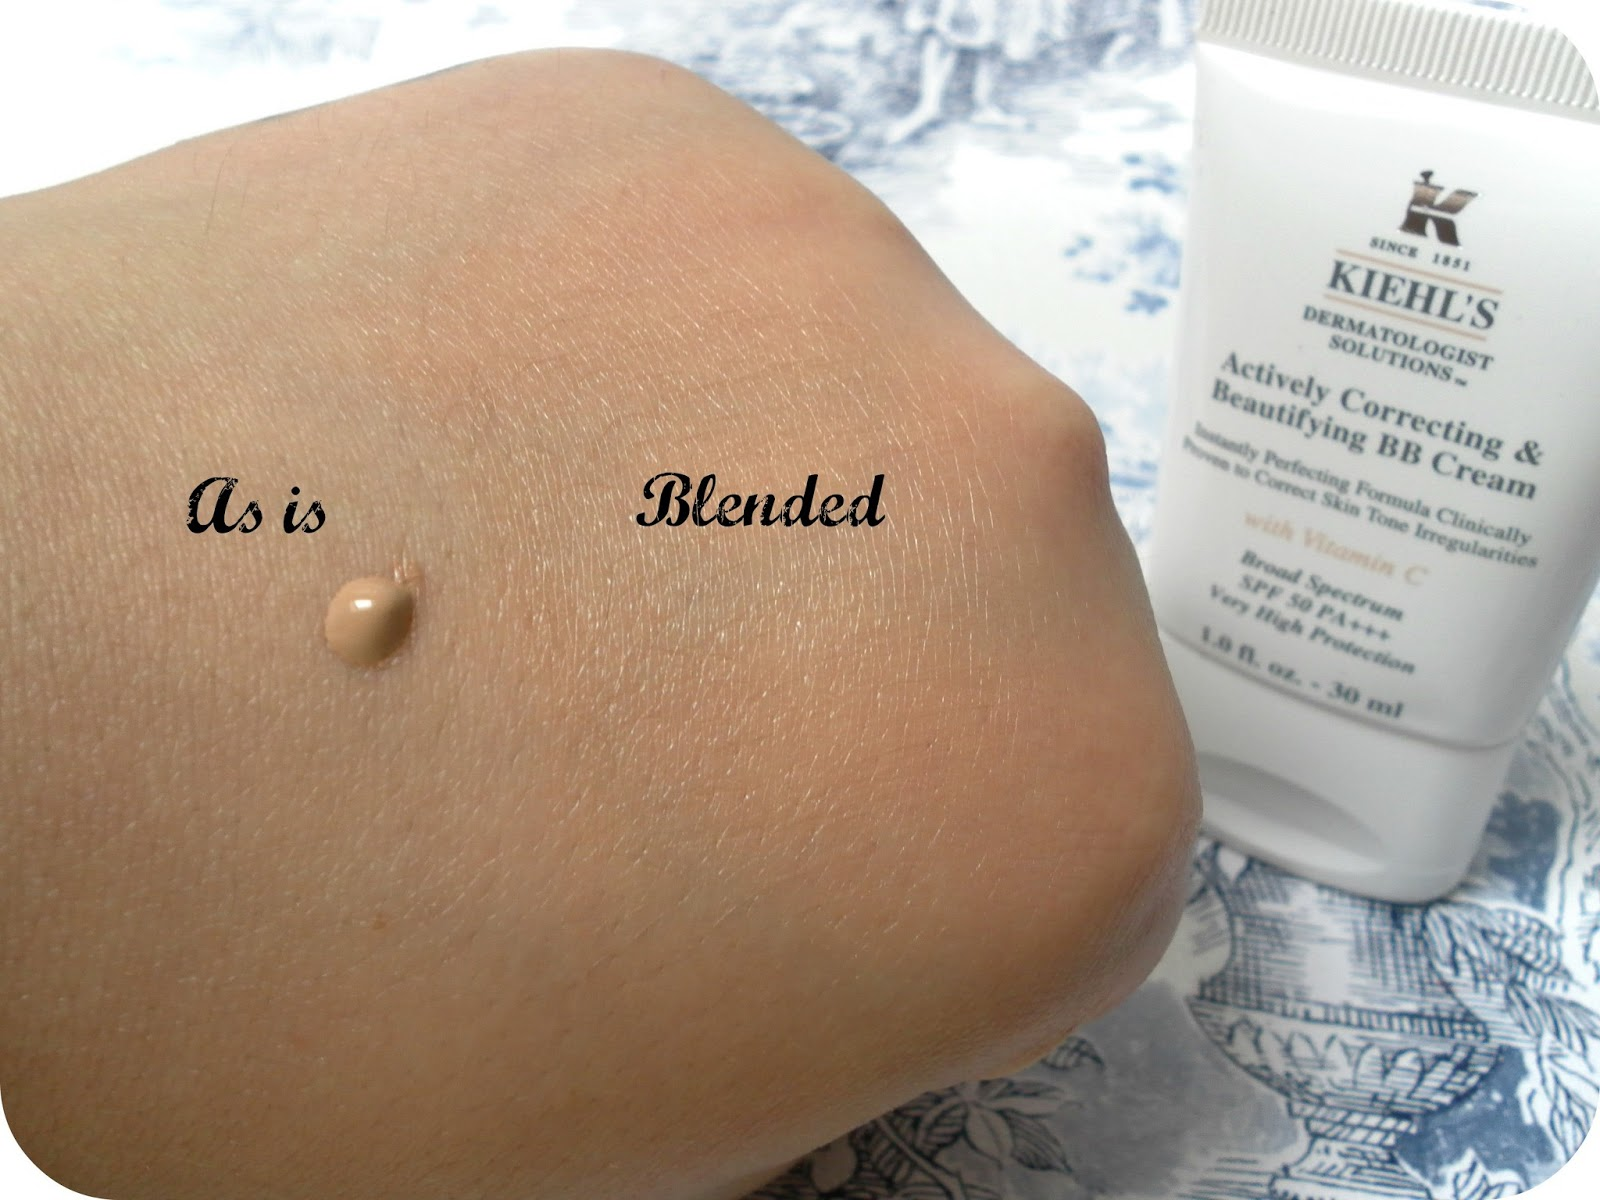 BB Cream - Actively Correcting and Beautifying with SPF 50 PA+++ by Kiehls #12